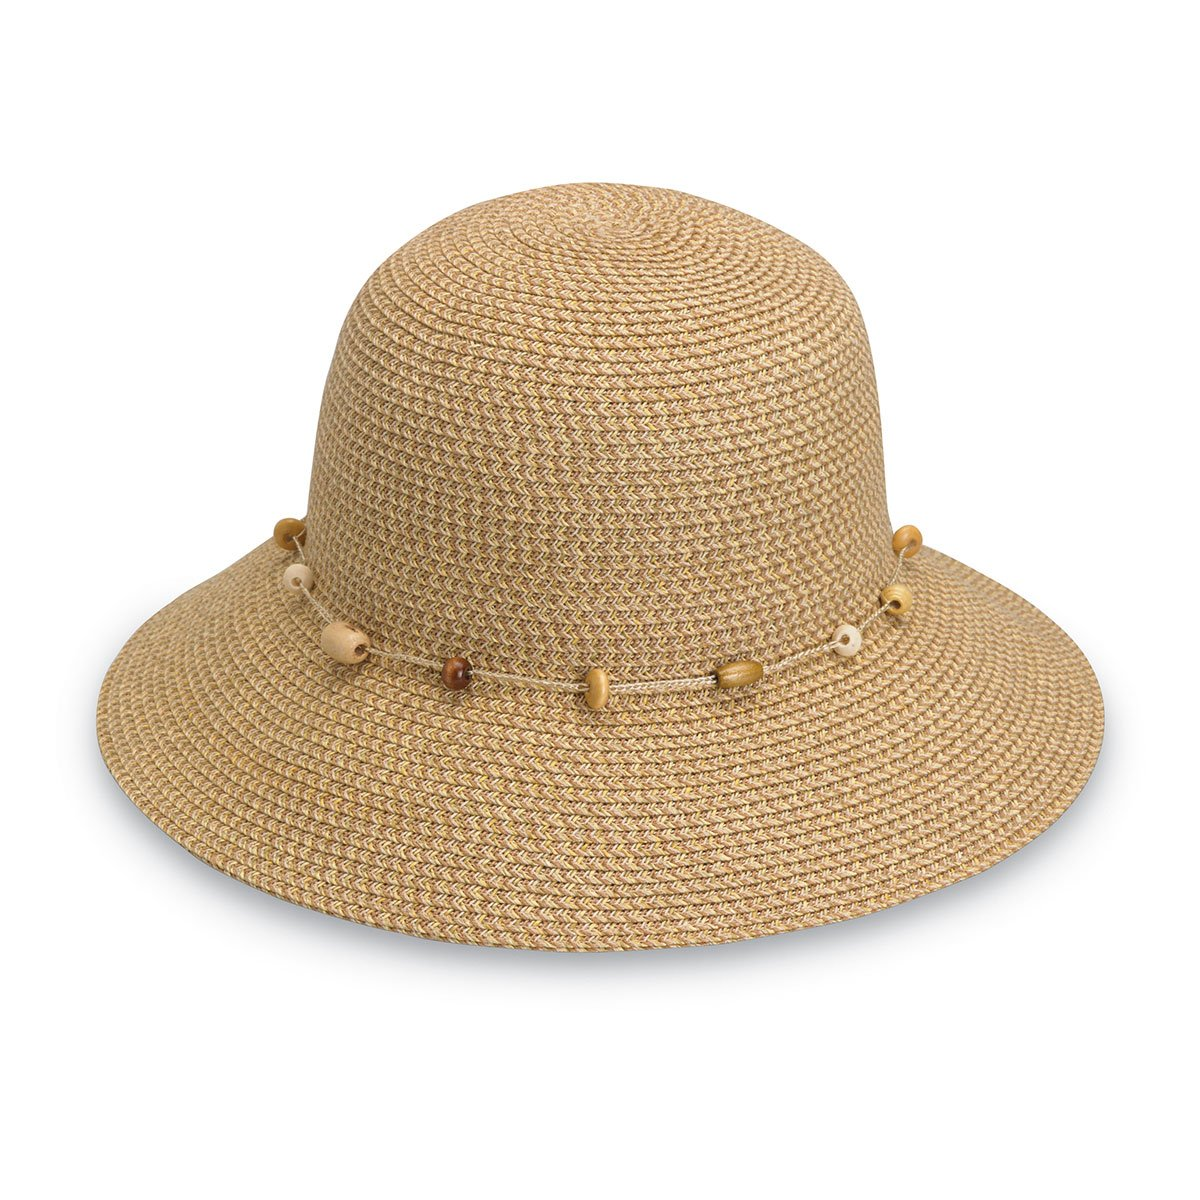 Wallaroo Hat Company Women's Naomi Sun Hat - UPF 50+, Packable, Modern Style, Designed in Australia - Natural